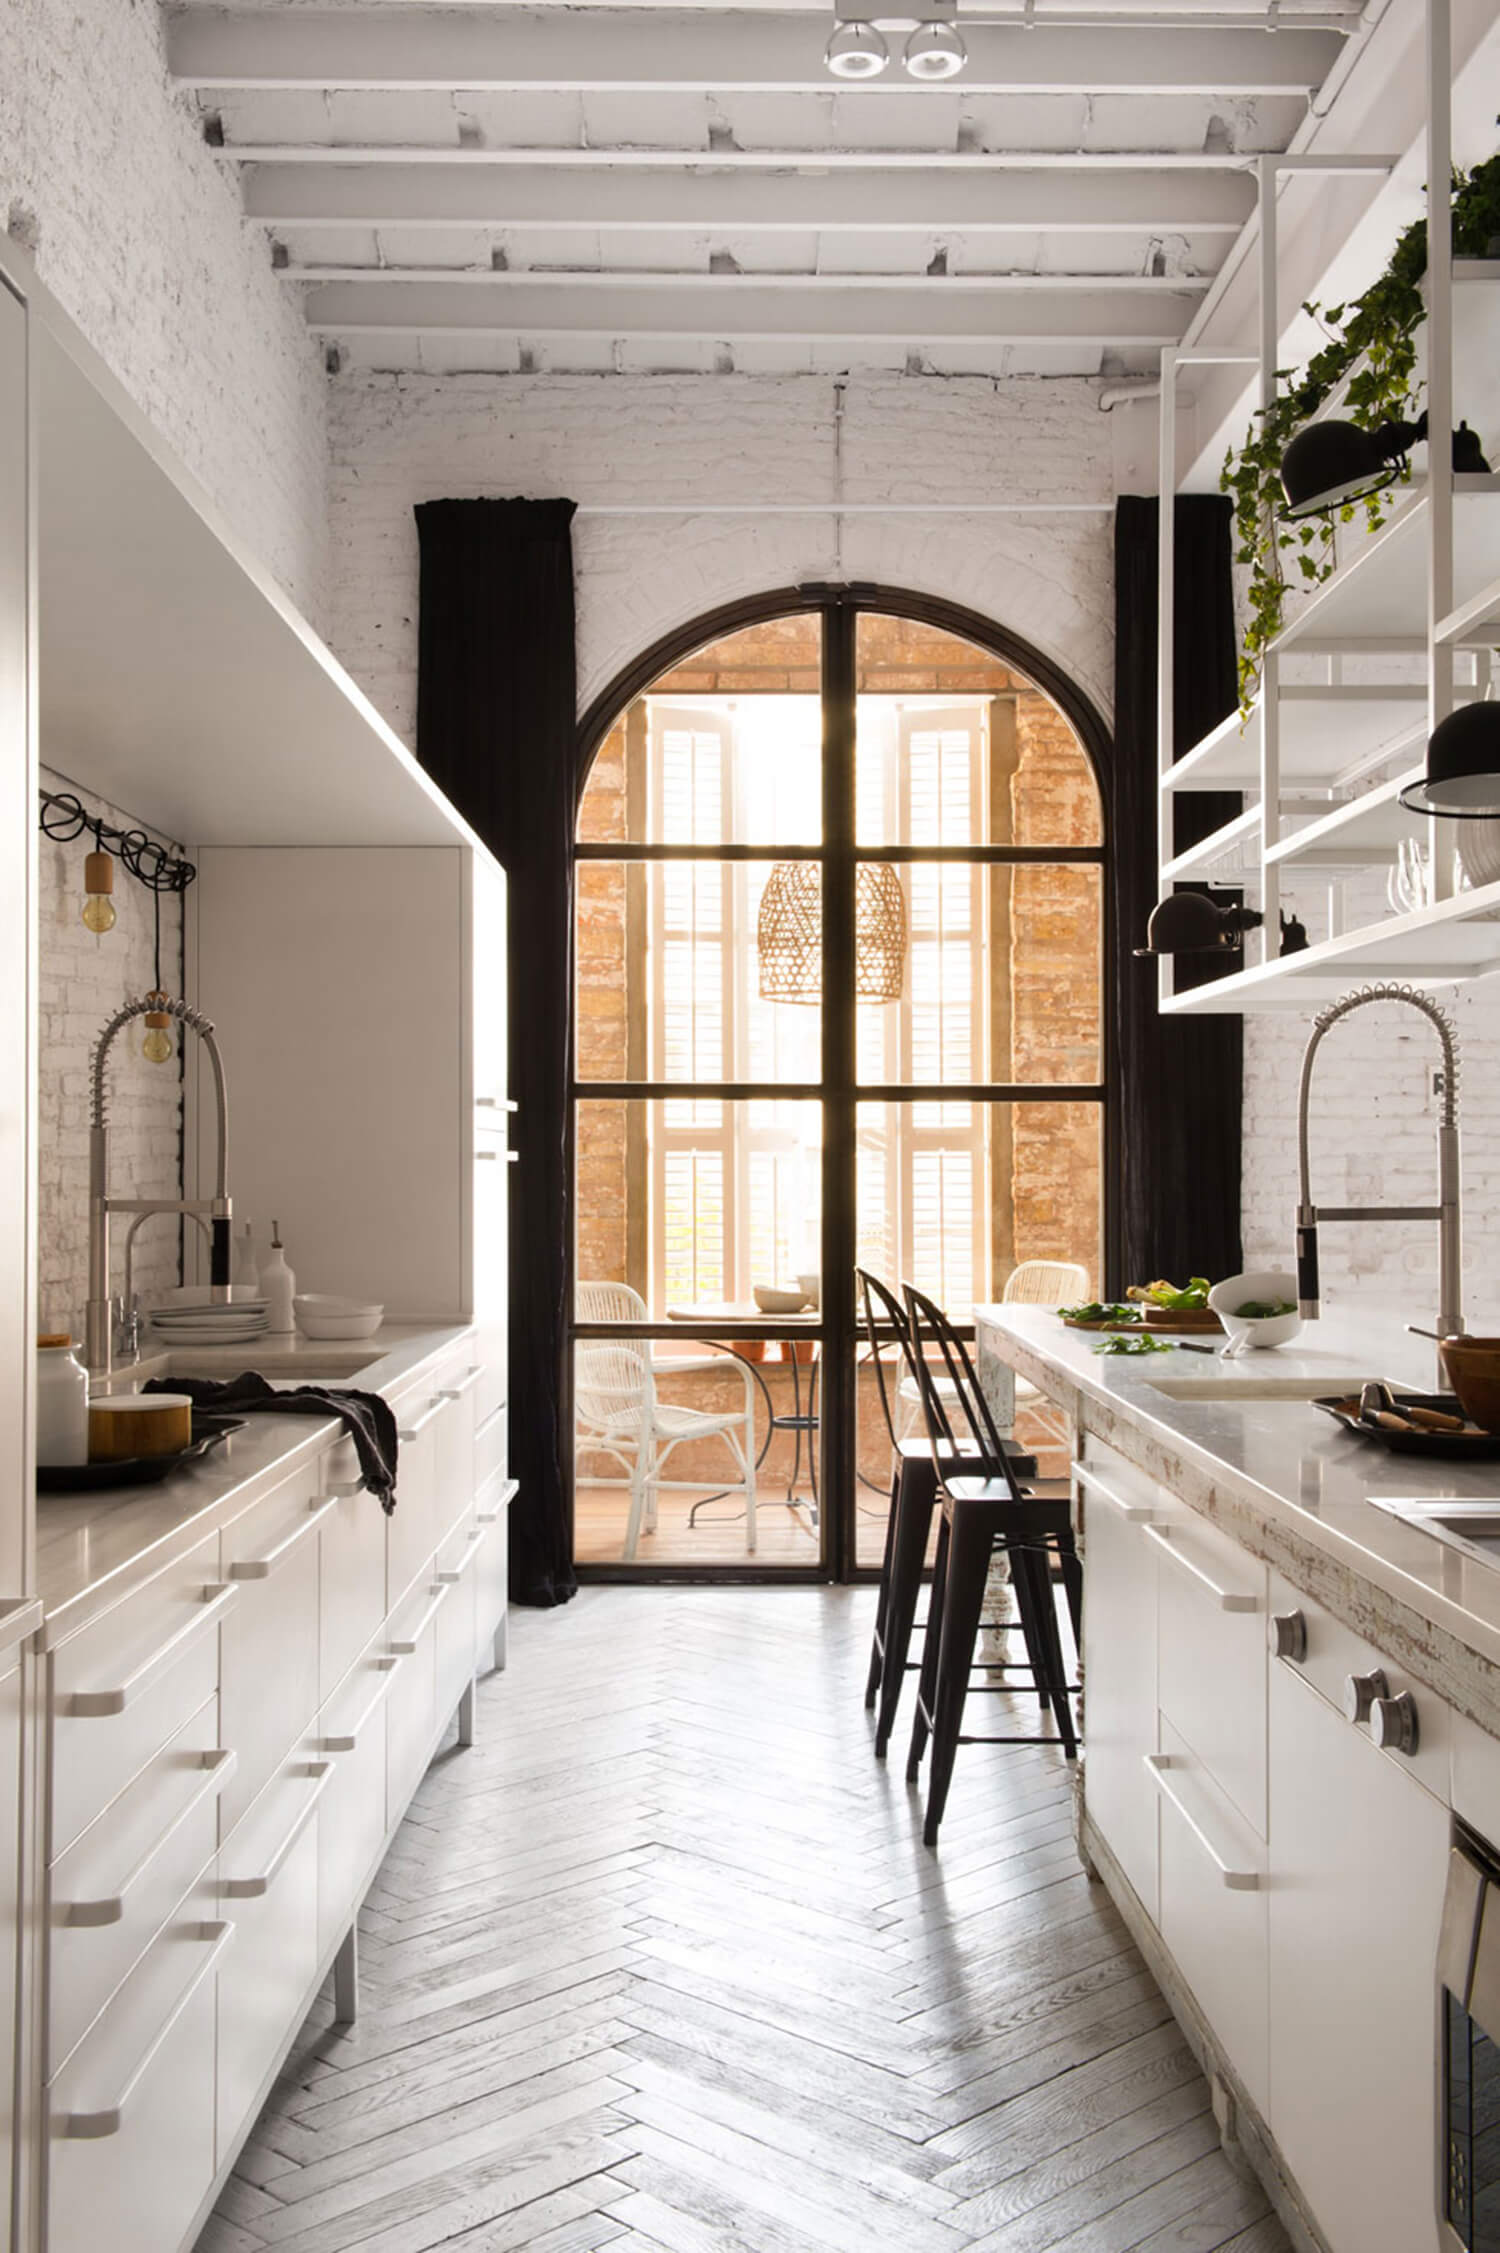 est-living-barcelona-loft-serrat-tort-architects-kitchen